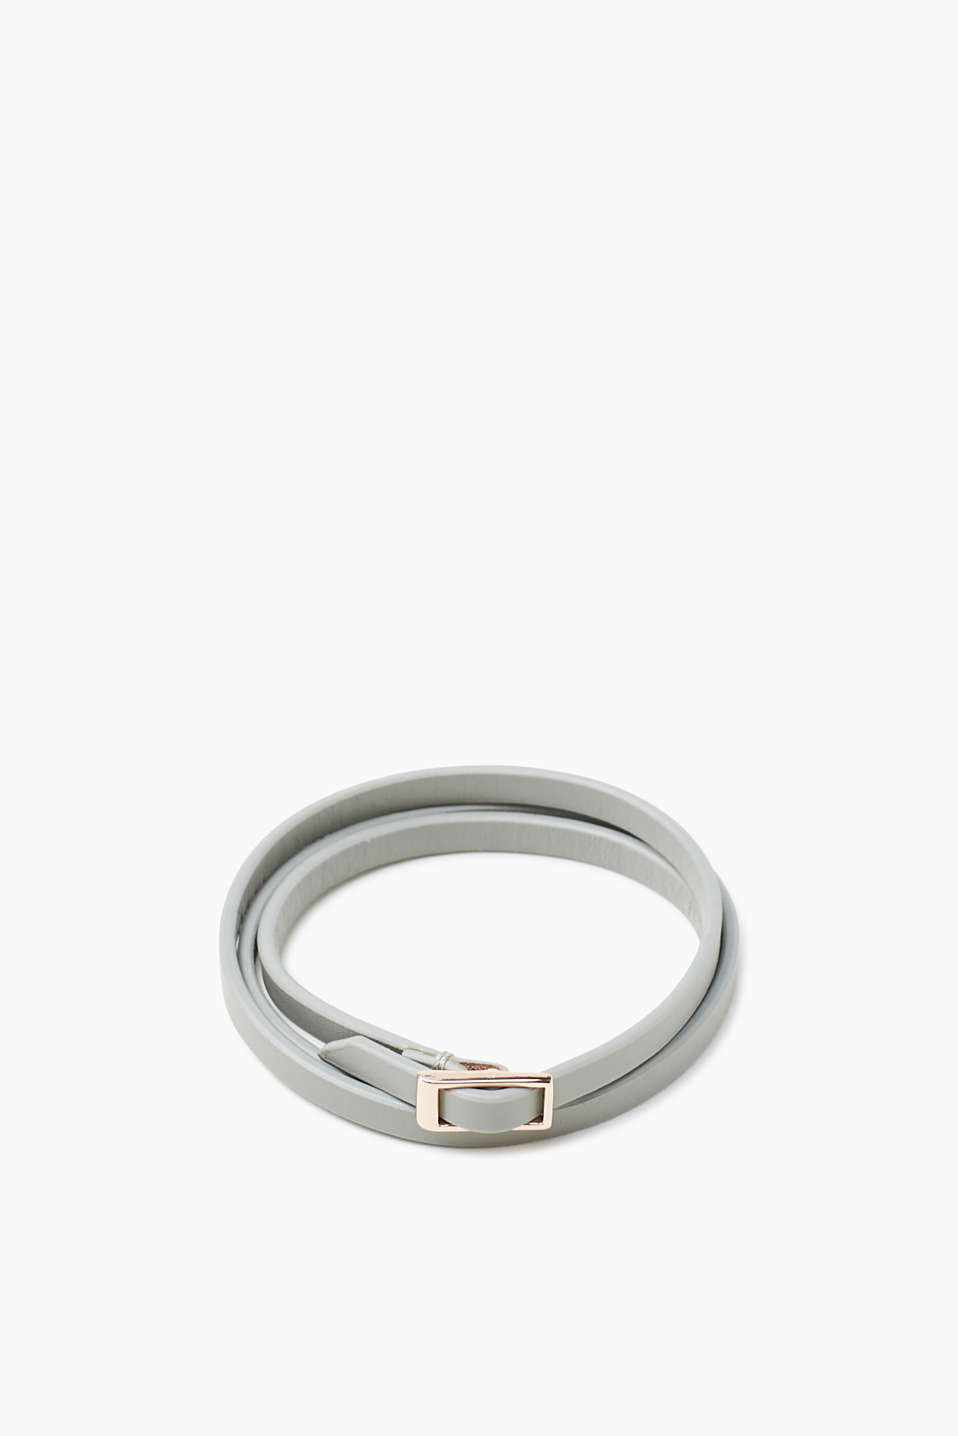 Narrow and minimalist: triple-wrap bracelet made of genuine leather with a metal buckle